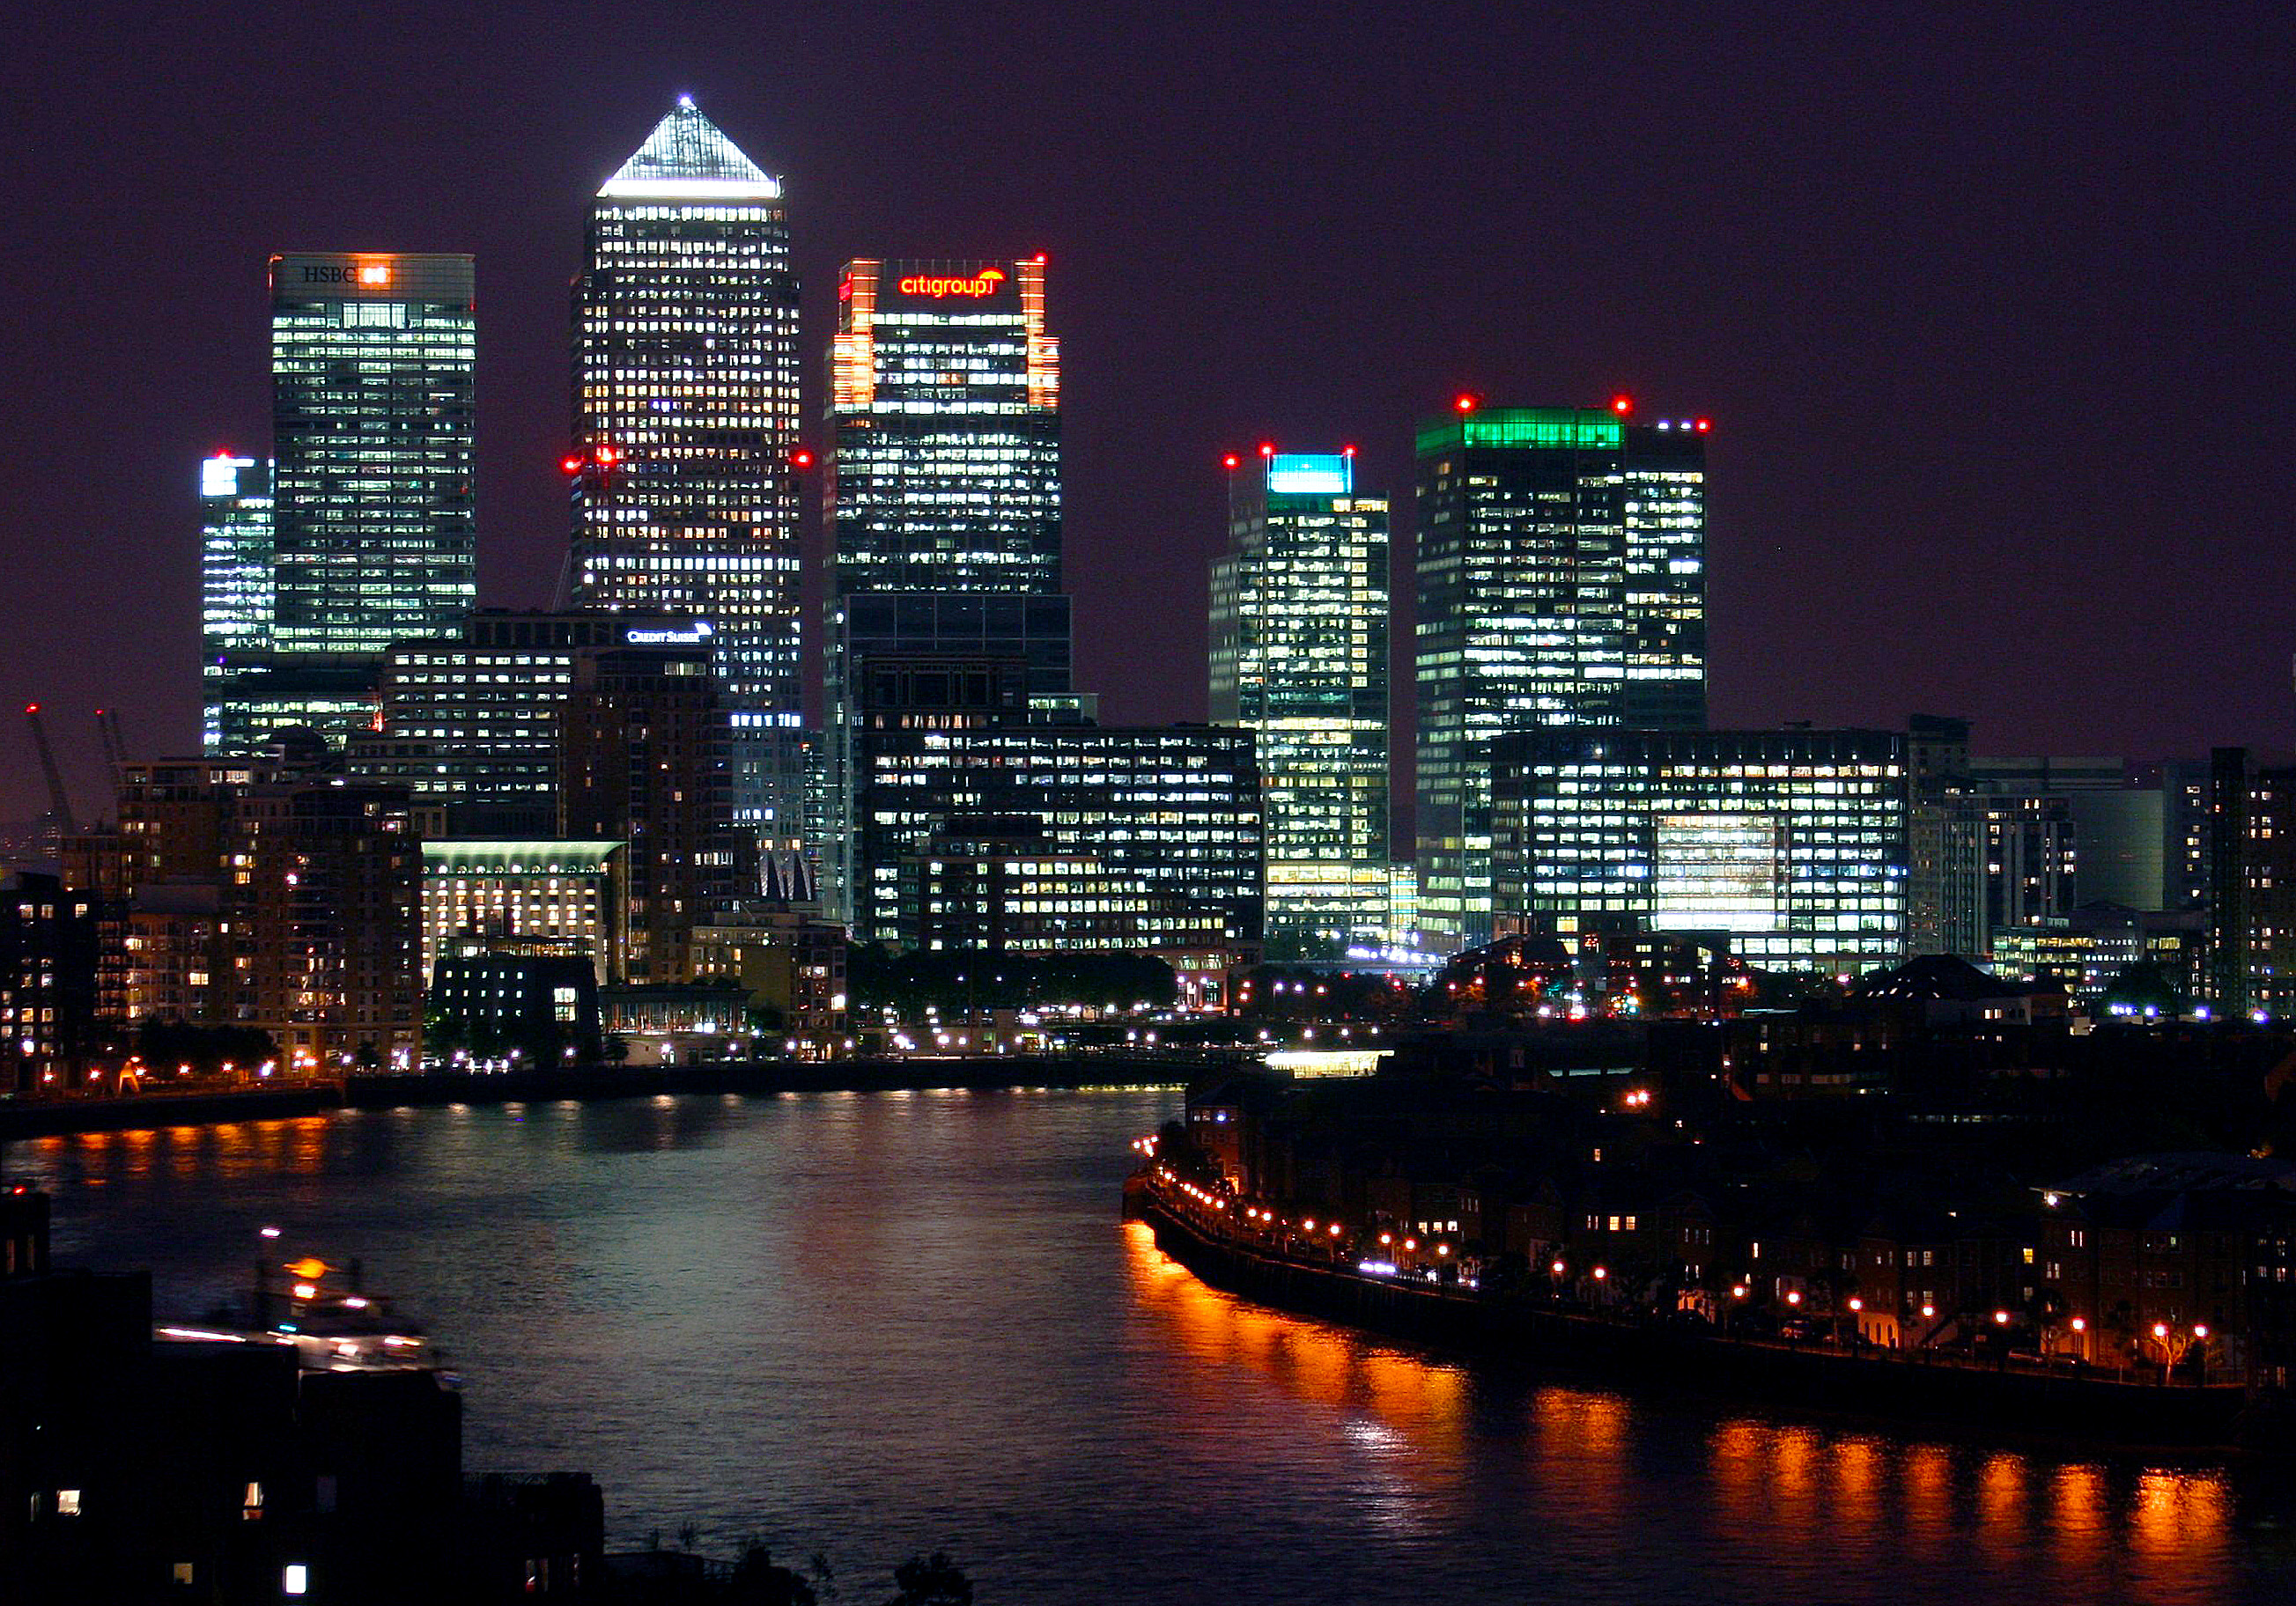 Beautiful Wallpaper Night London - canary_wharf_at_night_london  Image-402314.jpg